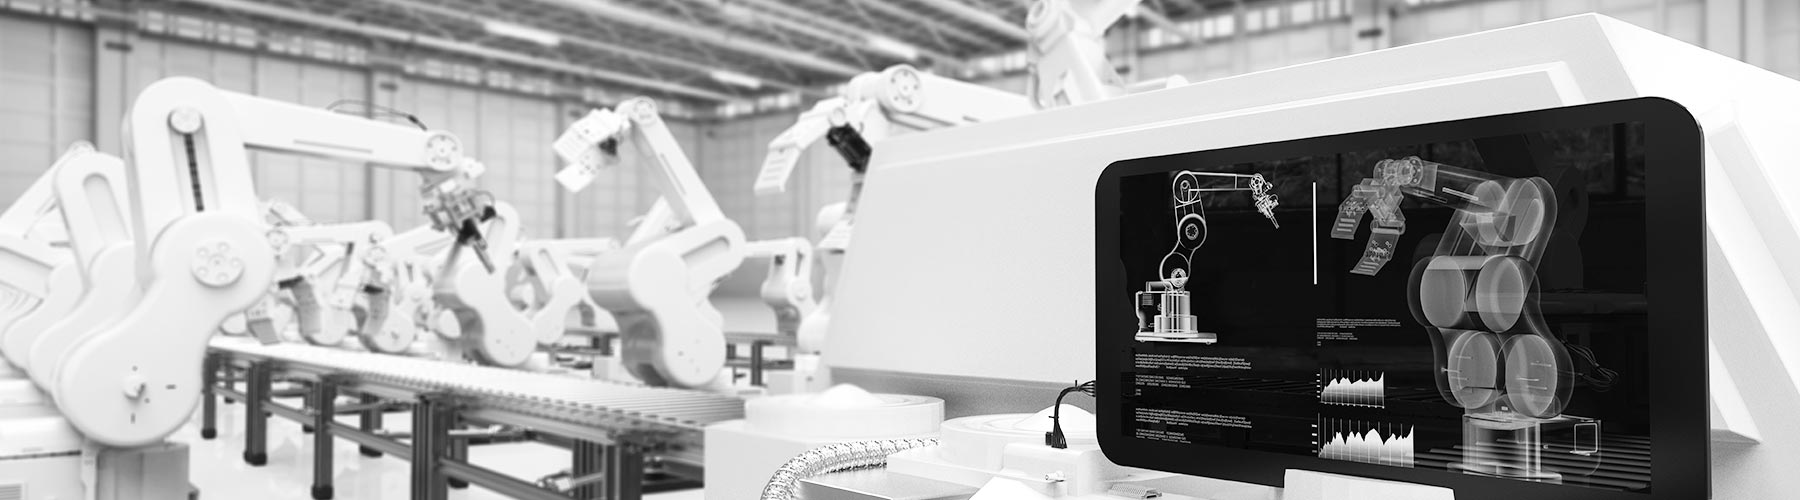 Industrial automation and IIOT